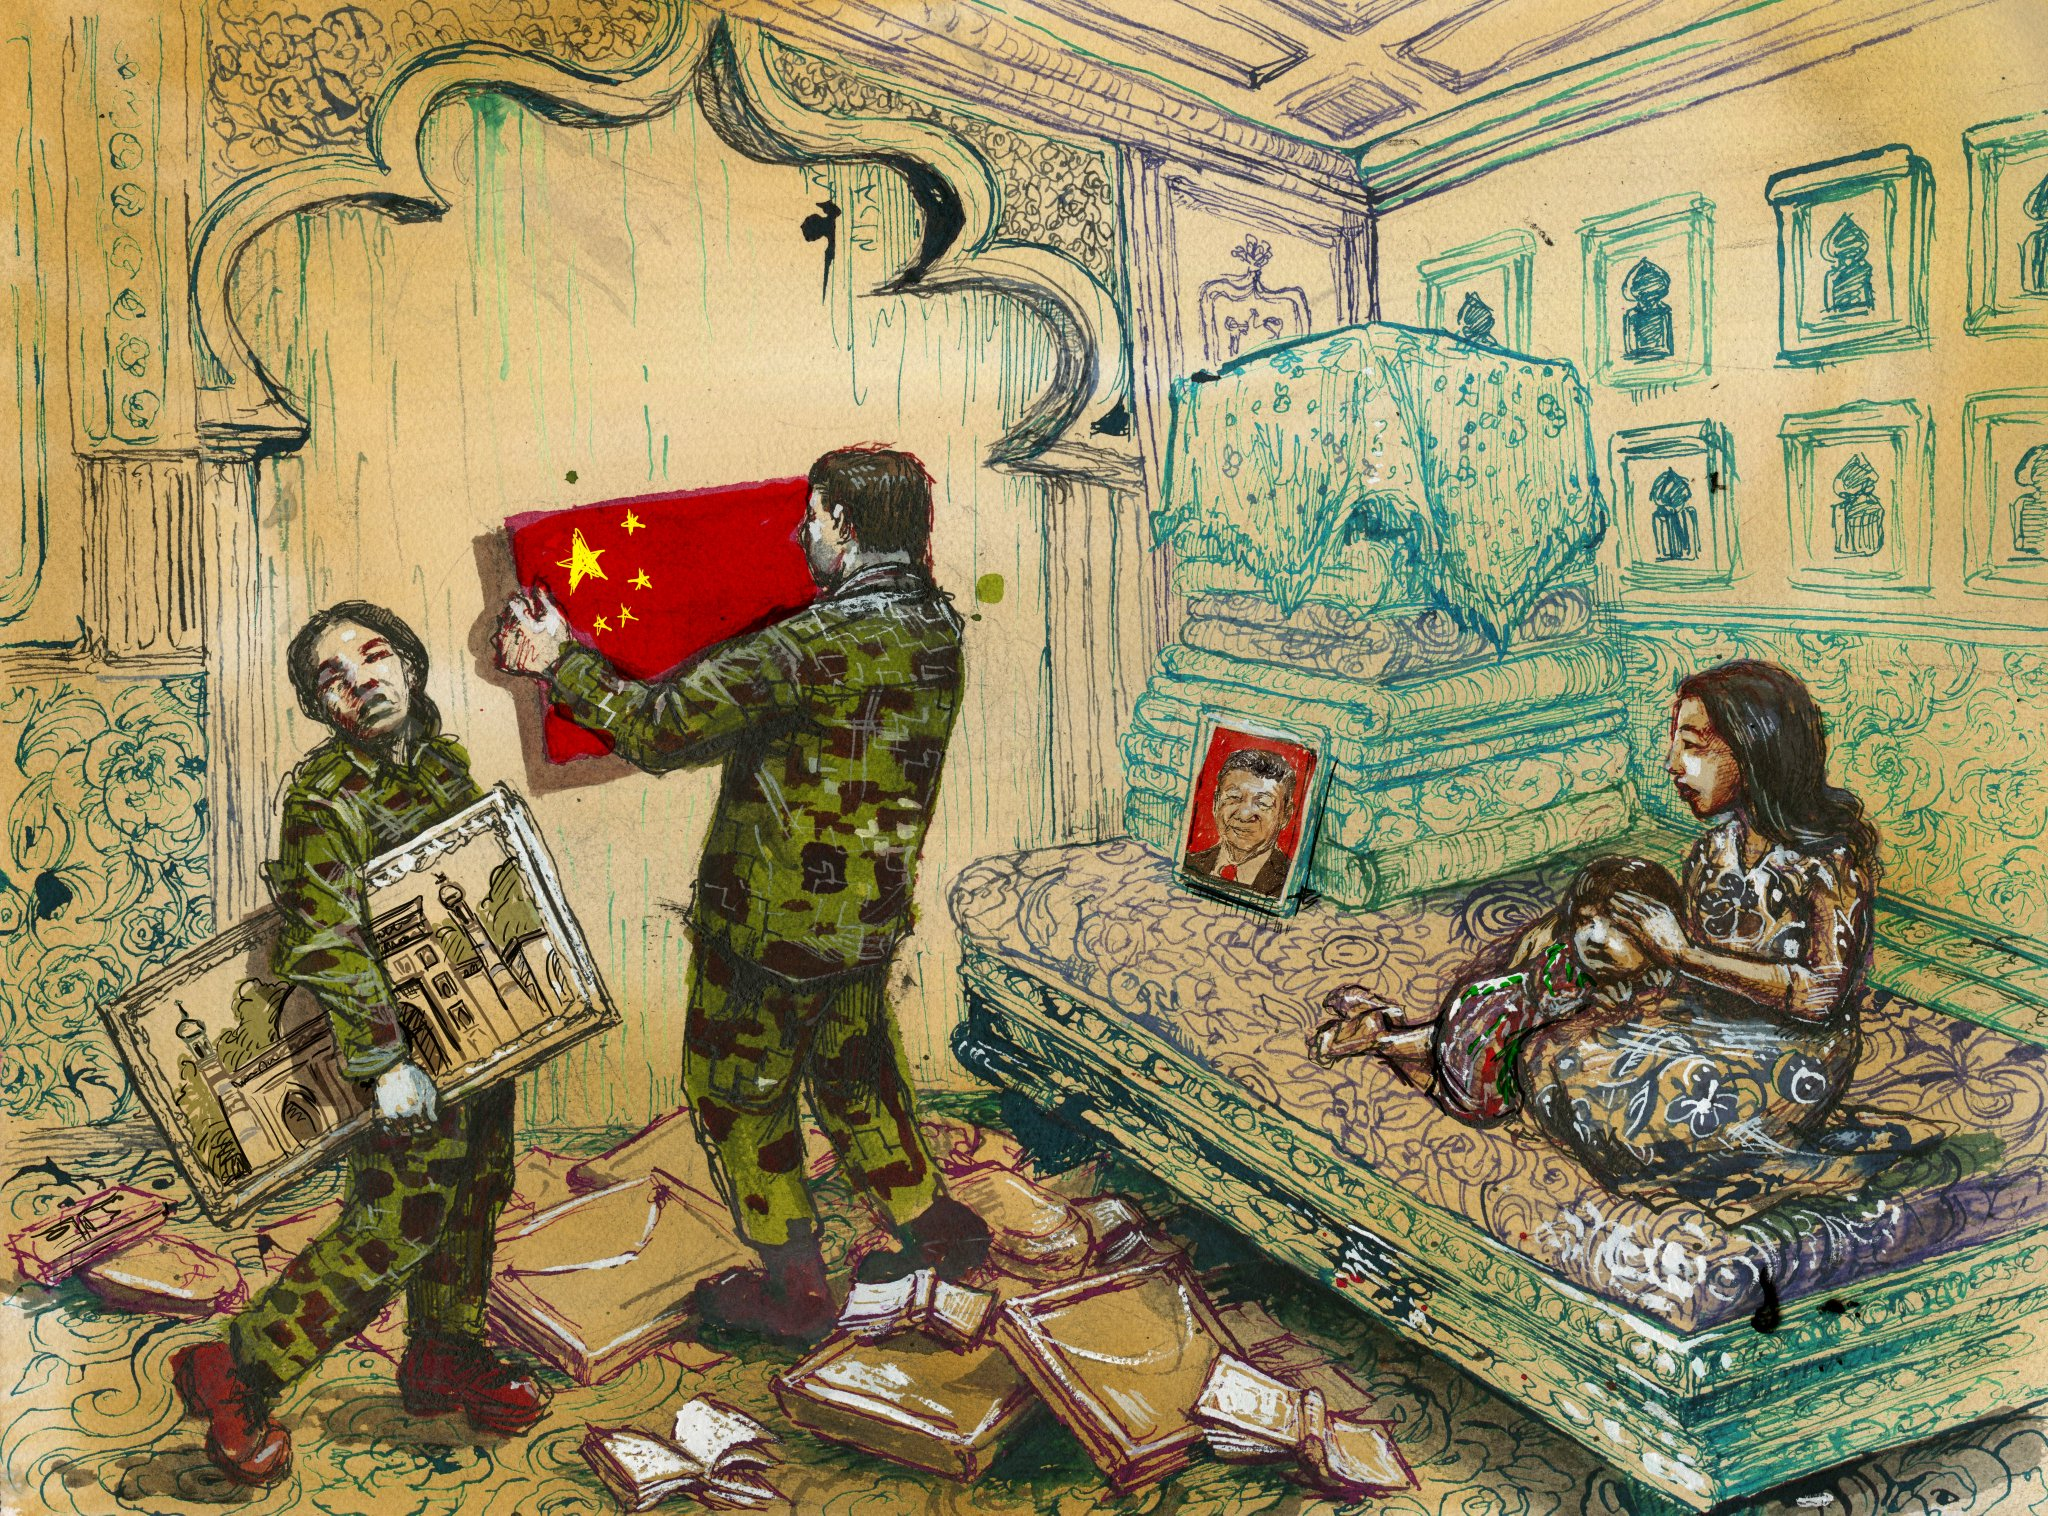 China has created a dystopian hellscape in Xinjiang, Amnesty report says Photo